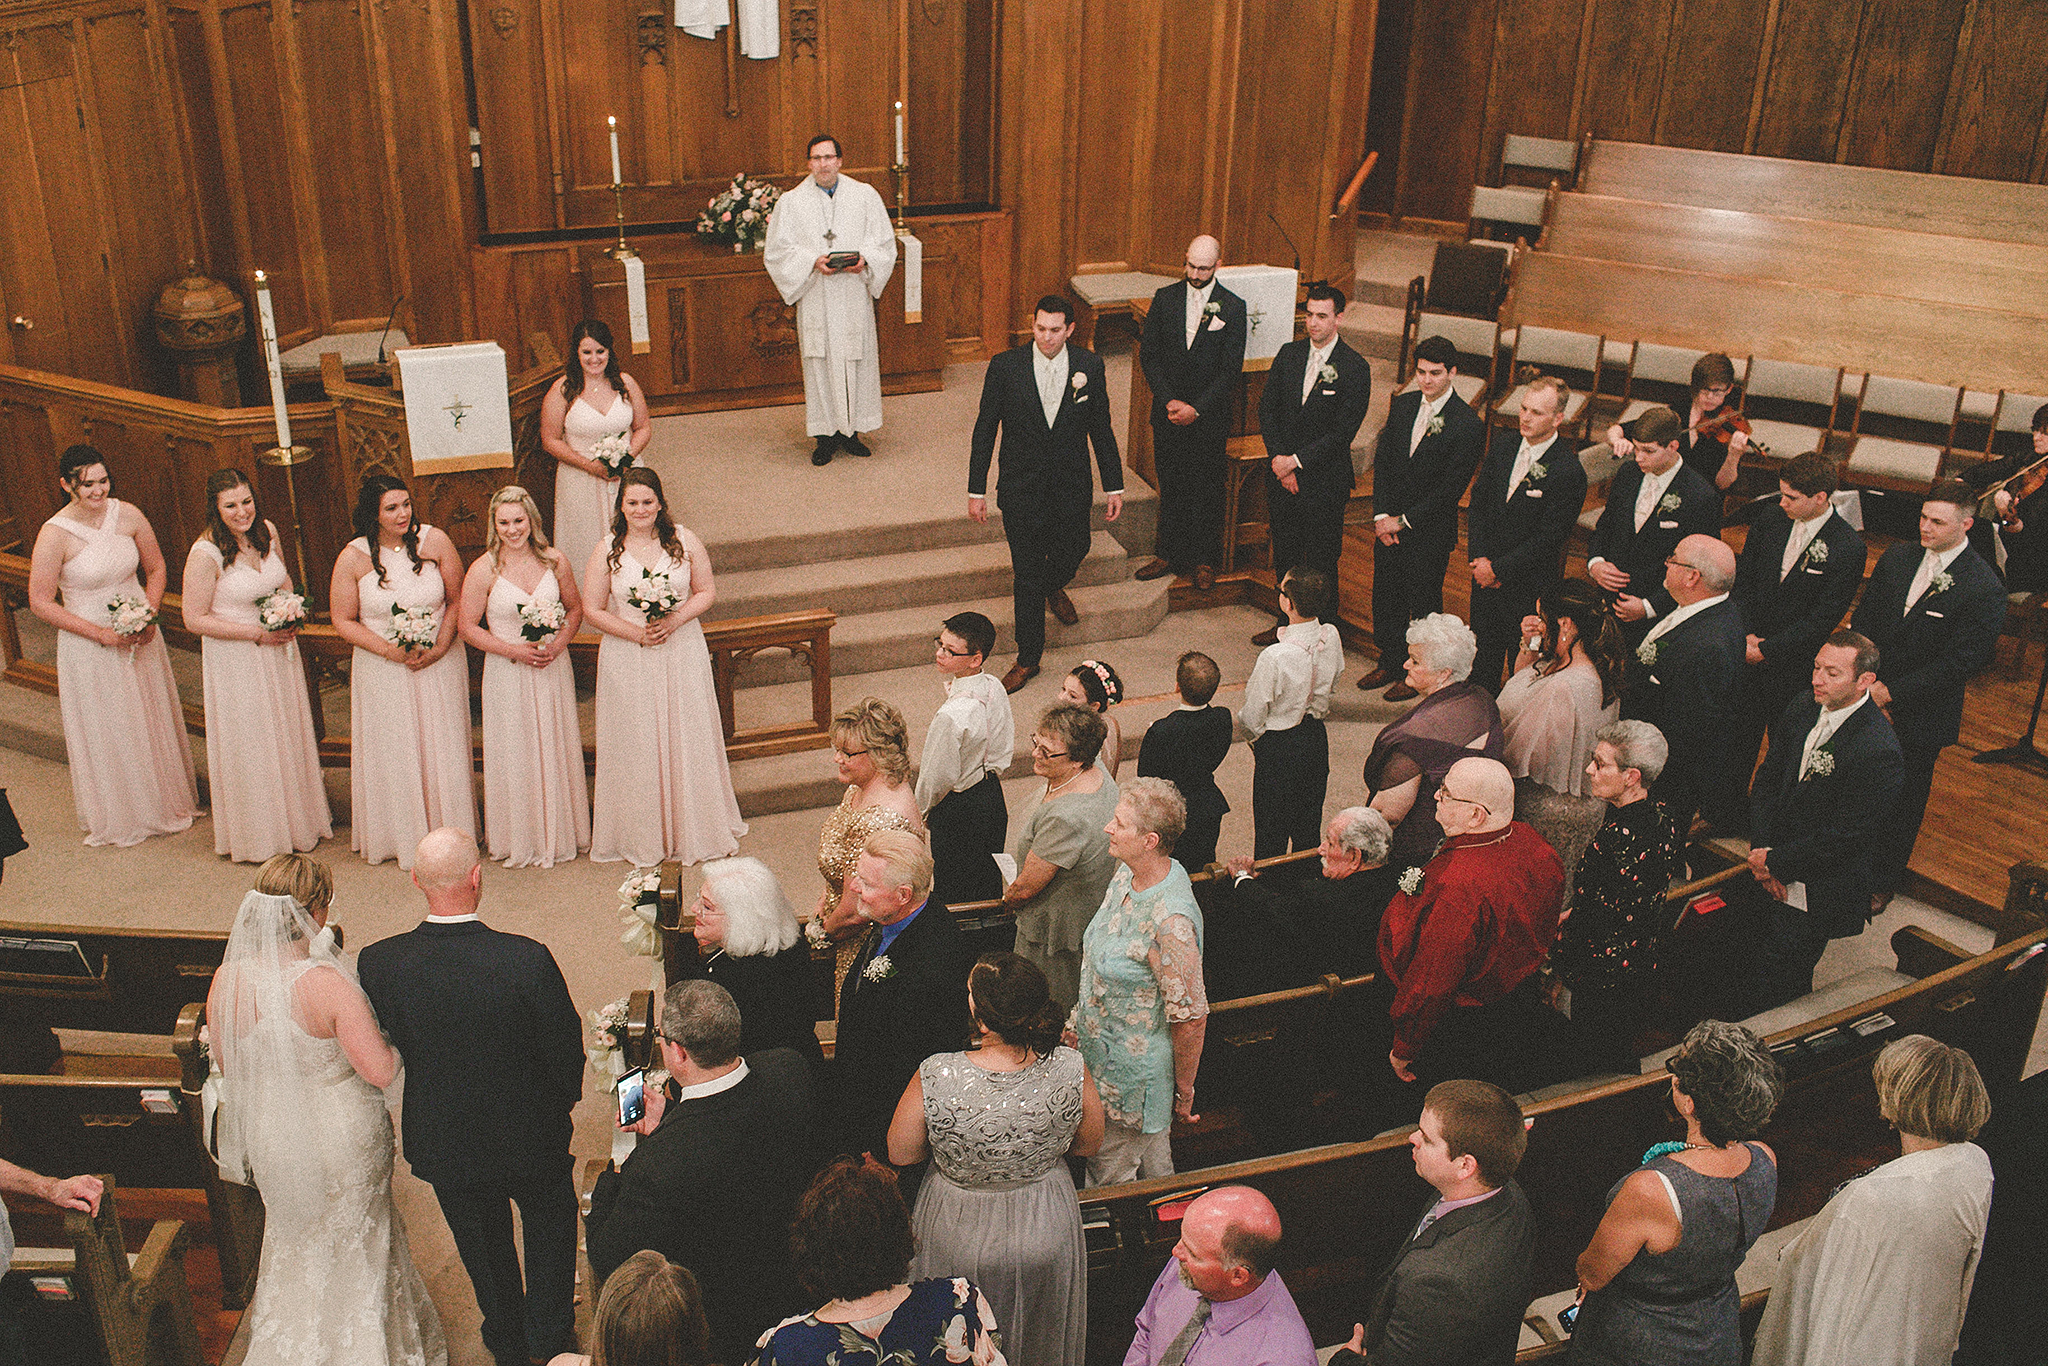 bride walking down aisle photographed from above and behind | dekalb il wedding photographer